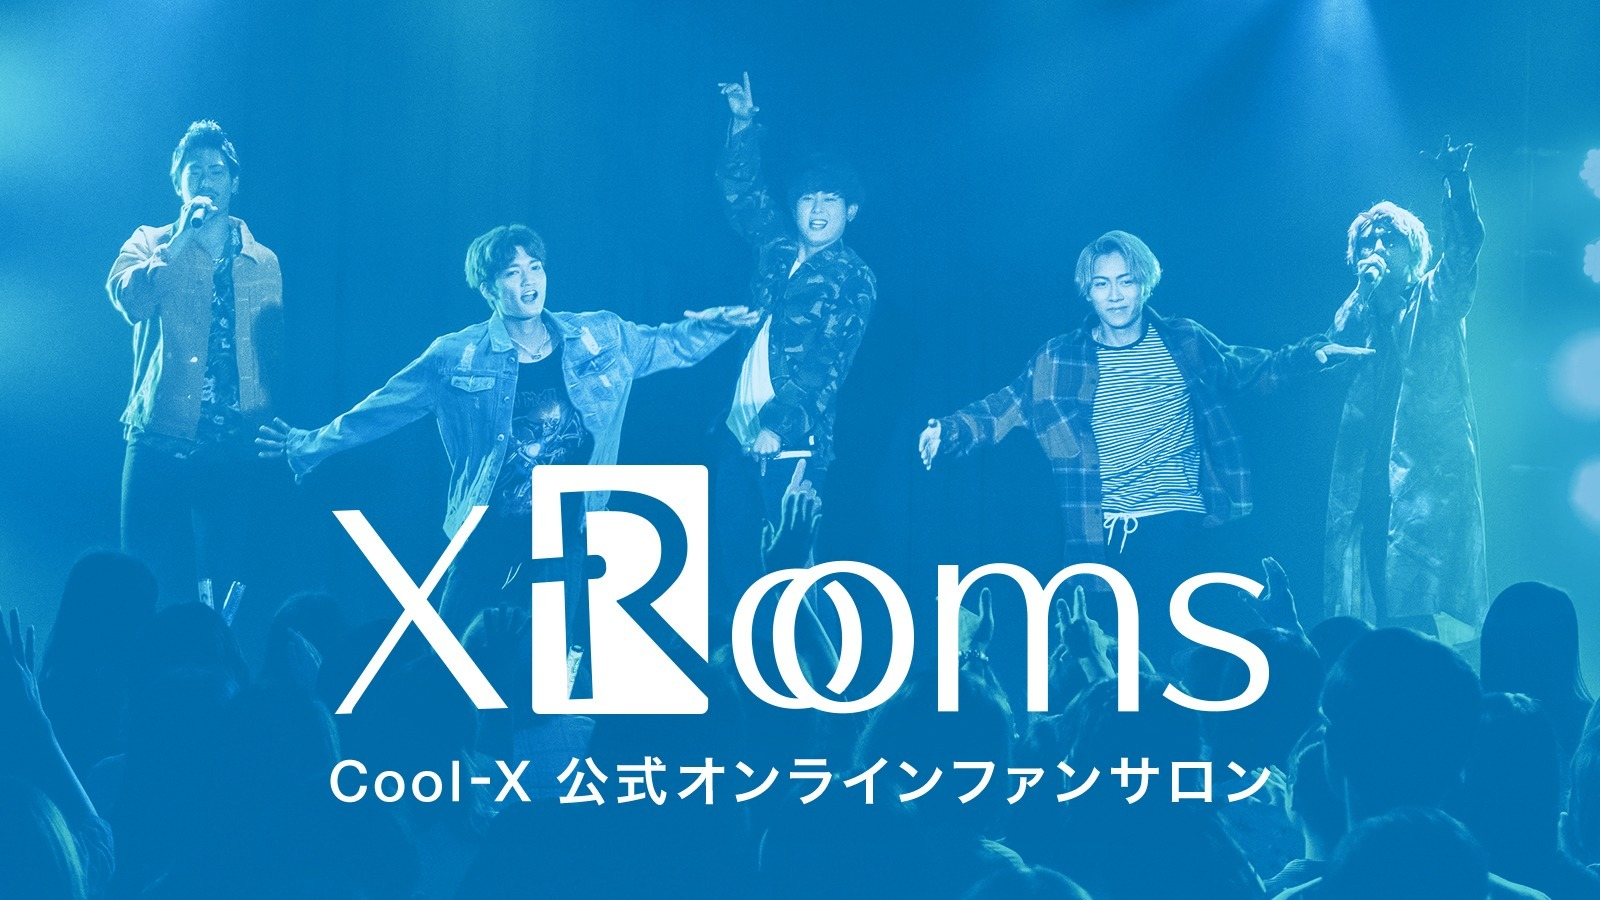 Cool-X X-Rooms